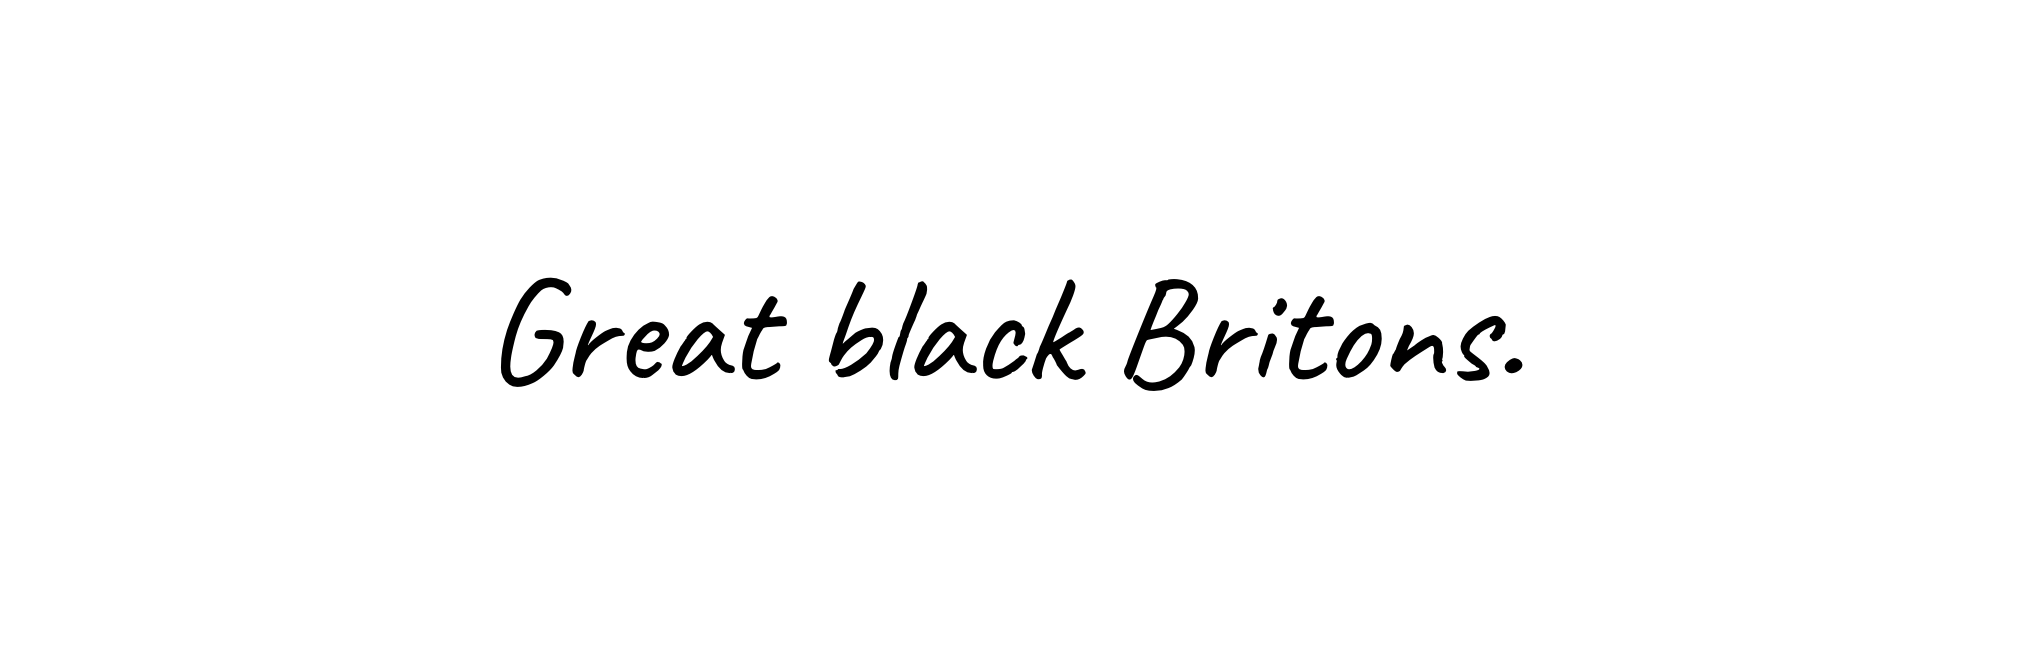 20/07/20 - Great Black Britons